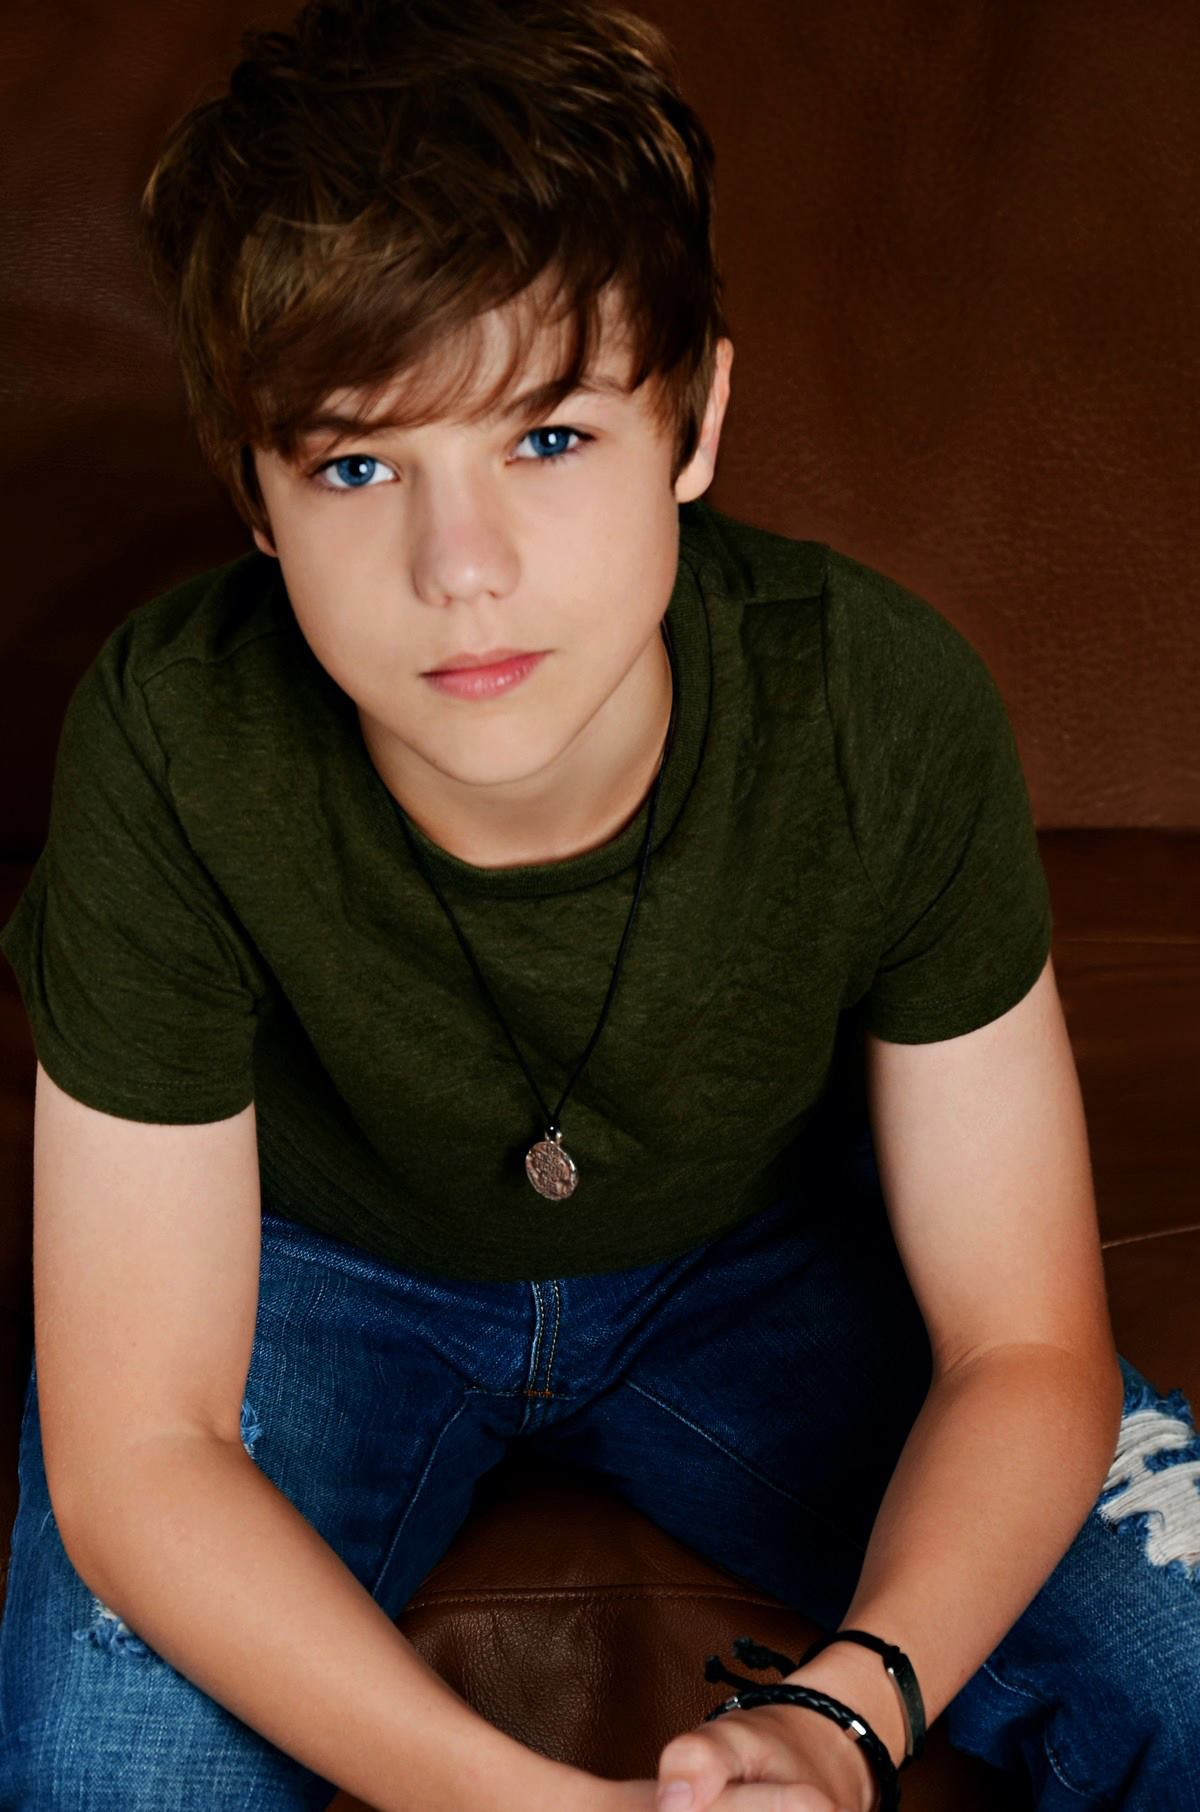 how tall is reed deming